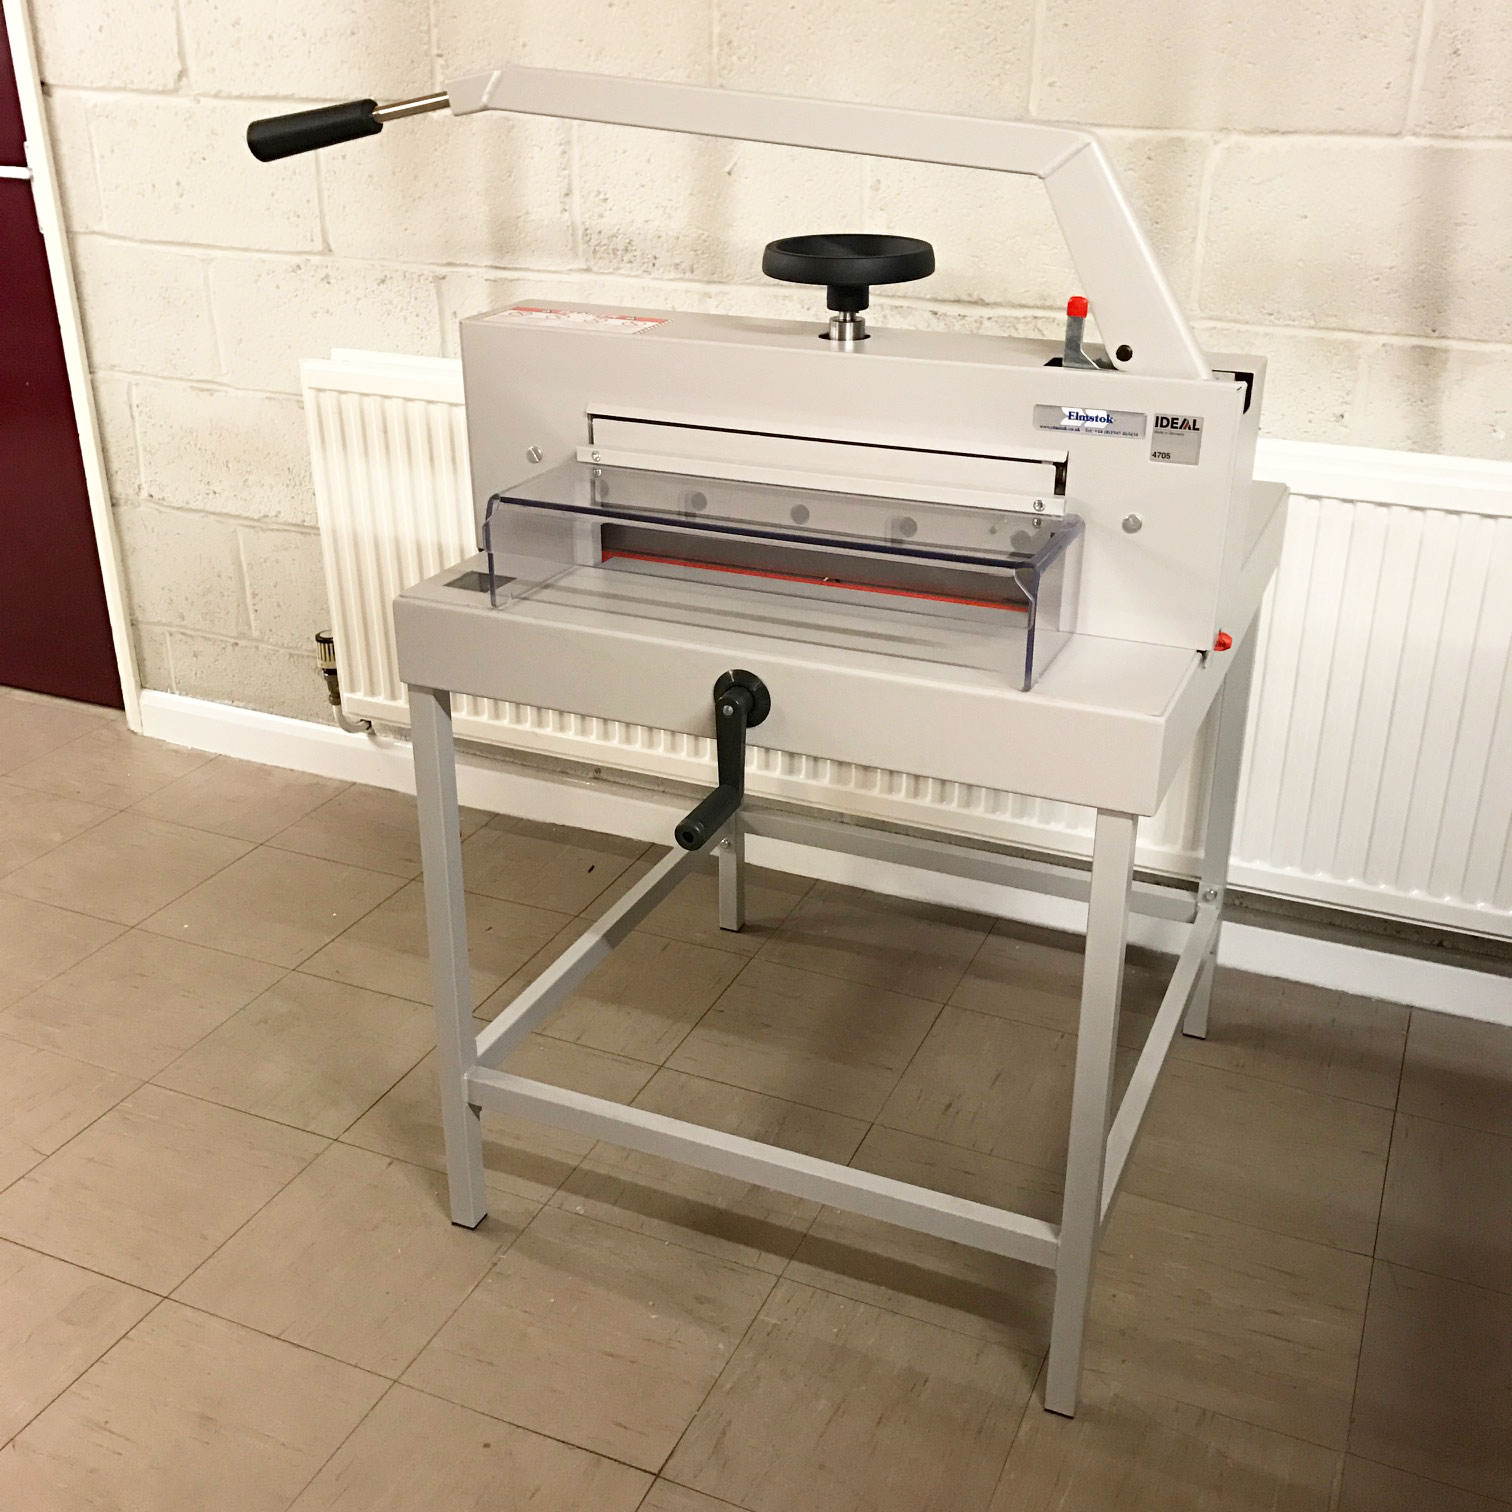 Ex-demo IDEAL 4705 Manual Guillotine Incl. Stand